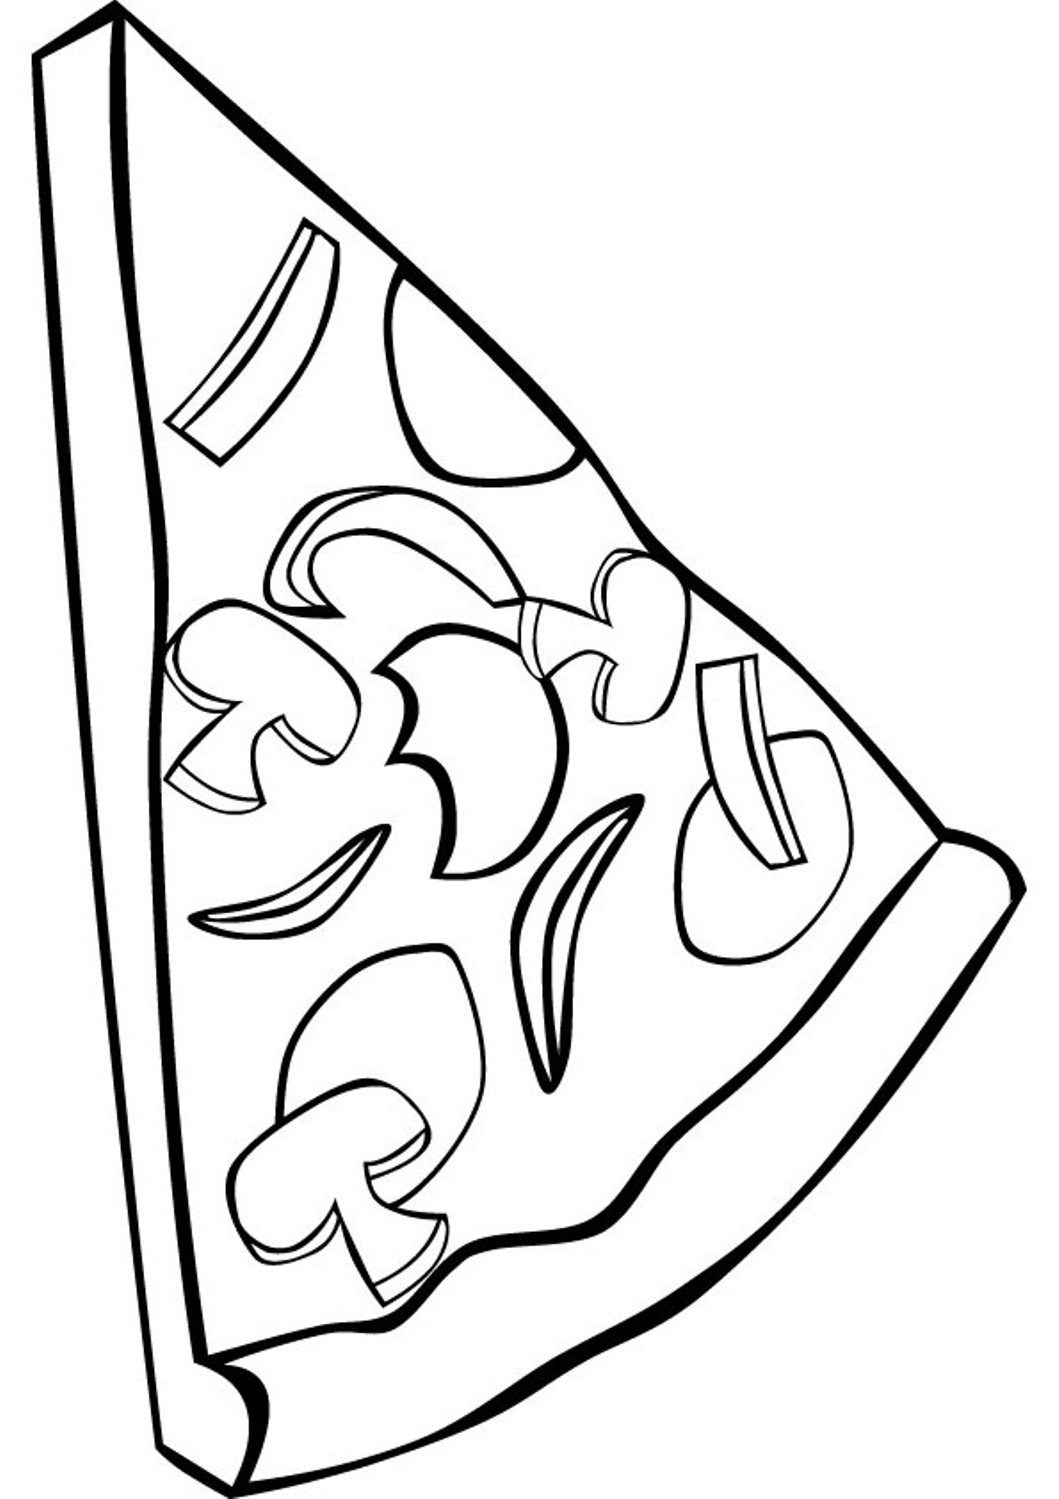 Pizza Line Drawing at GetDrawings | Free download